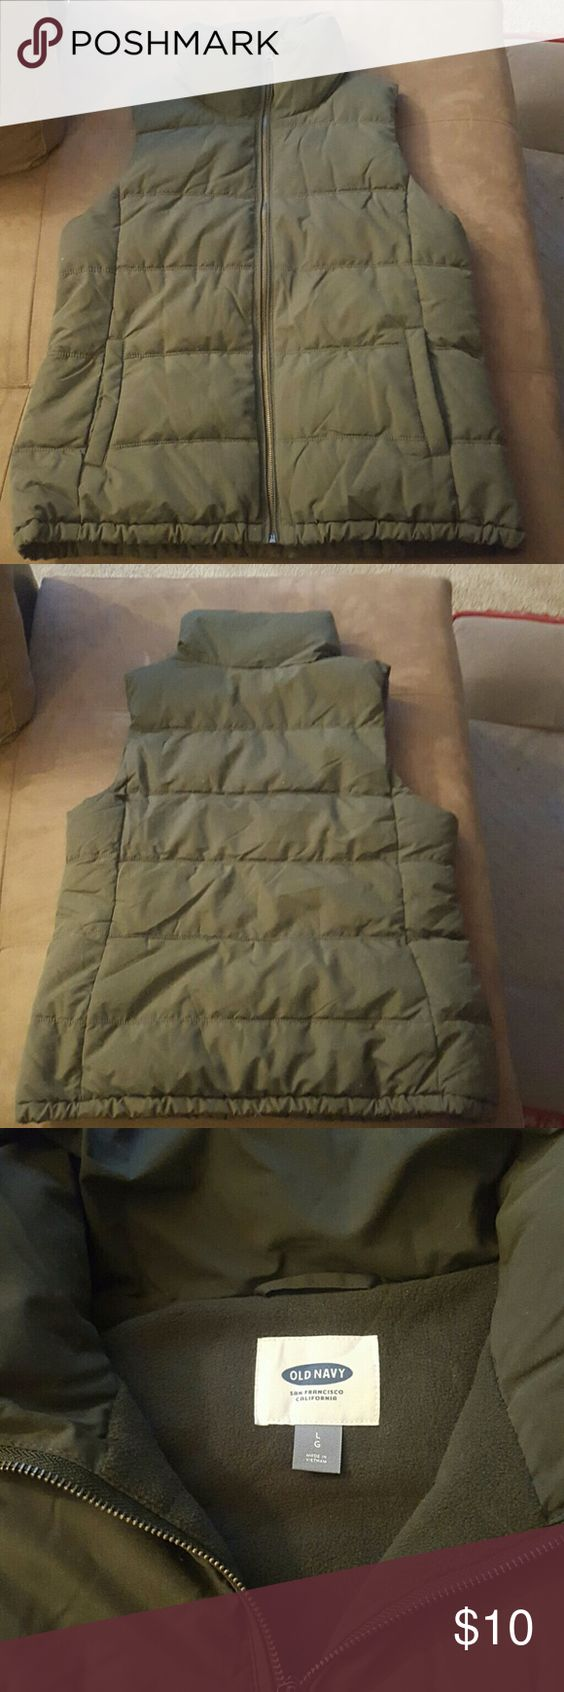 Forest green down vest Warm and comfy forest green down vest size large from old navy. Only worn once in perfect condition. Asking $10. Old Navy Jackets & Coats Vests